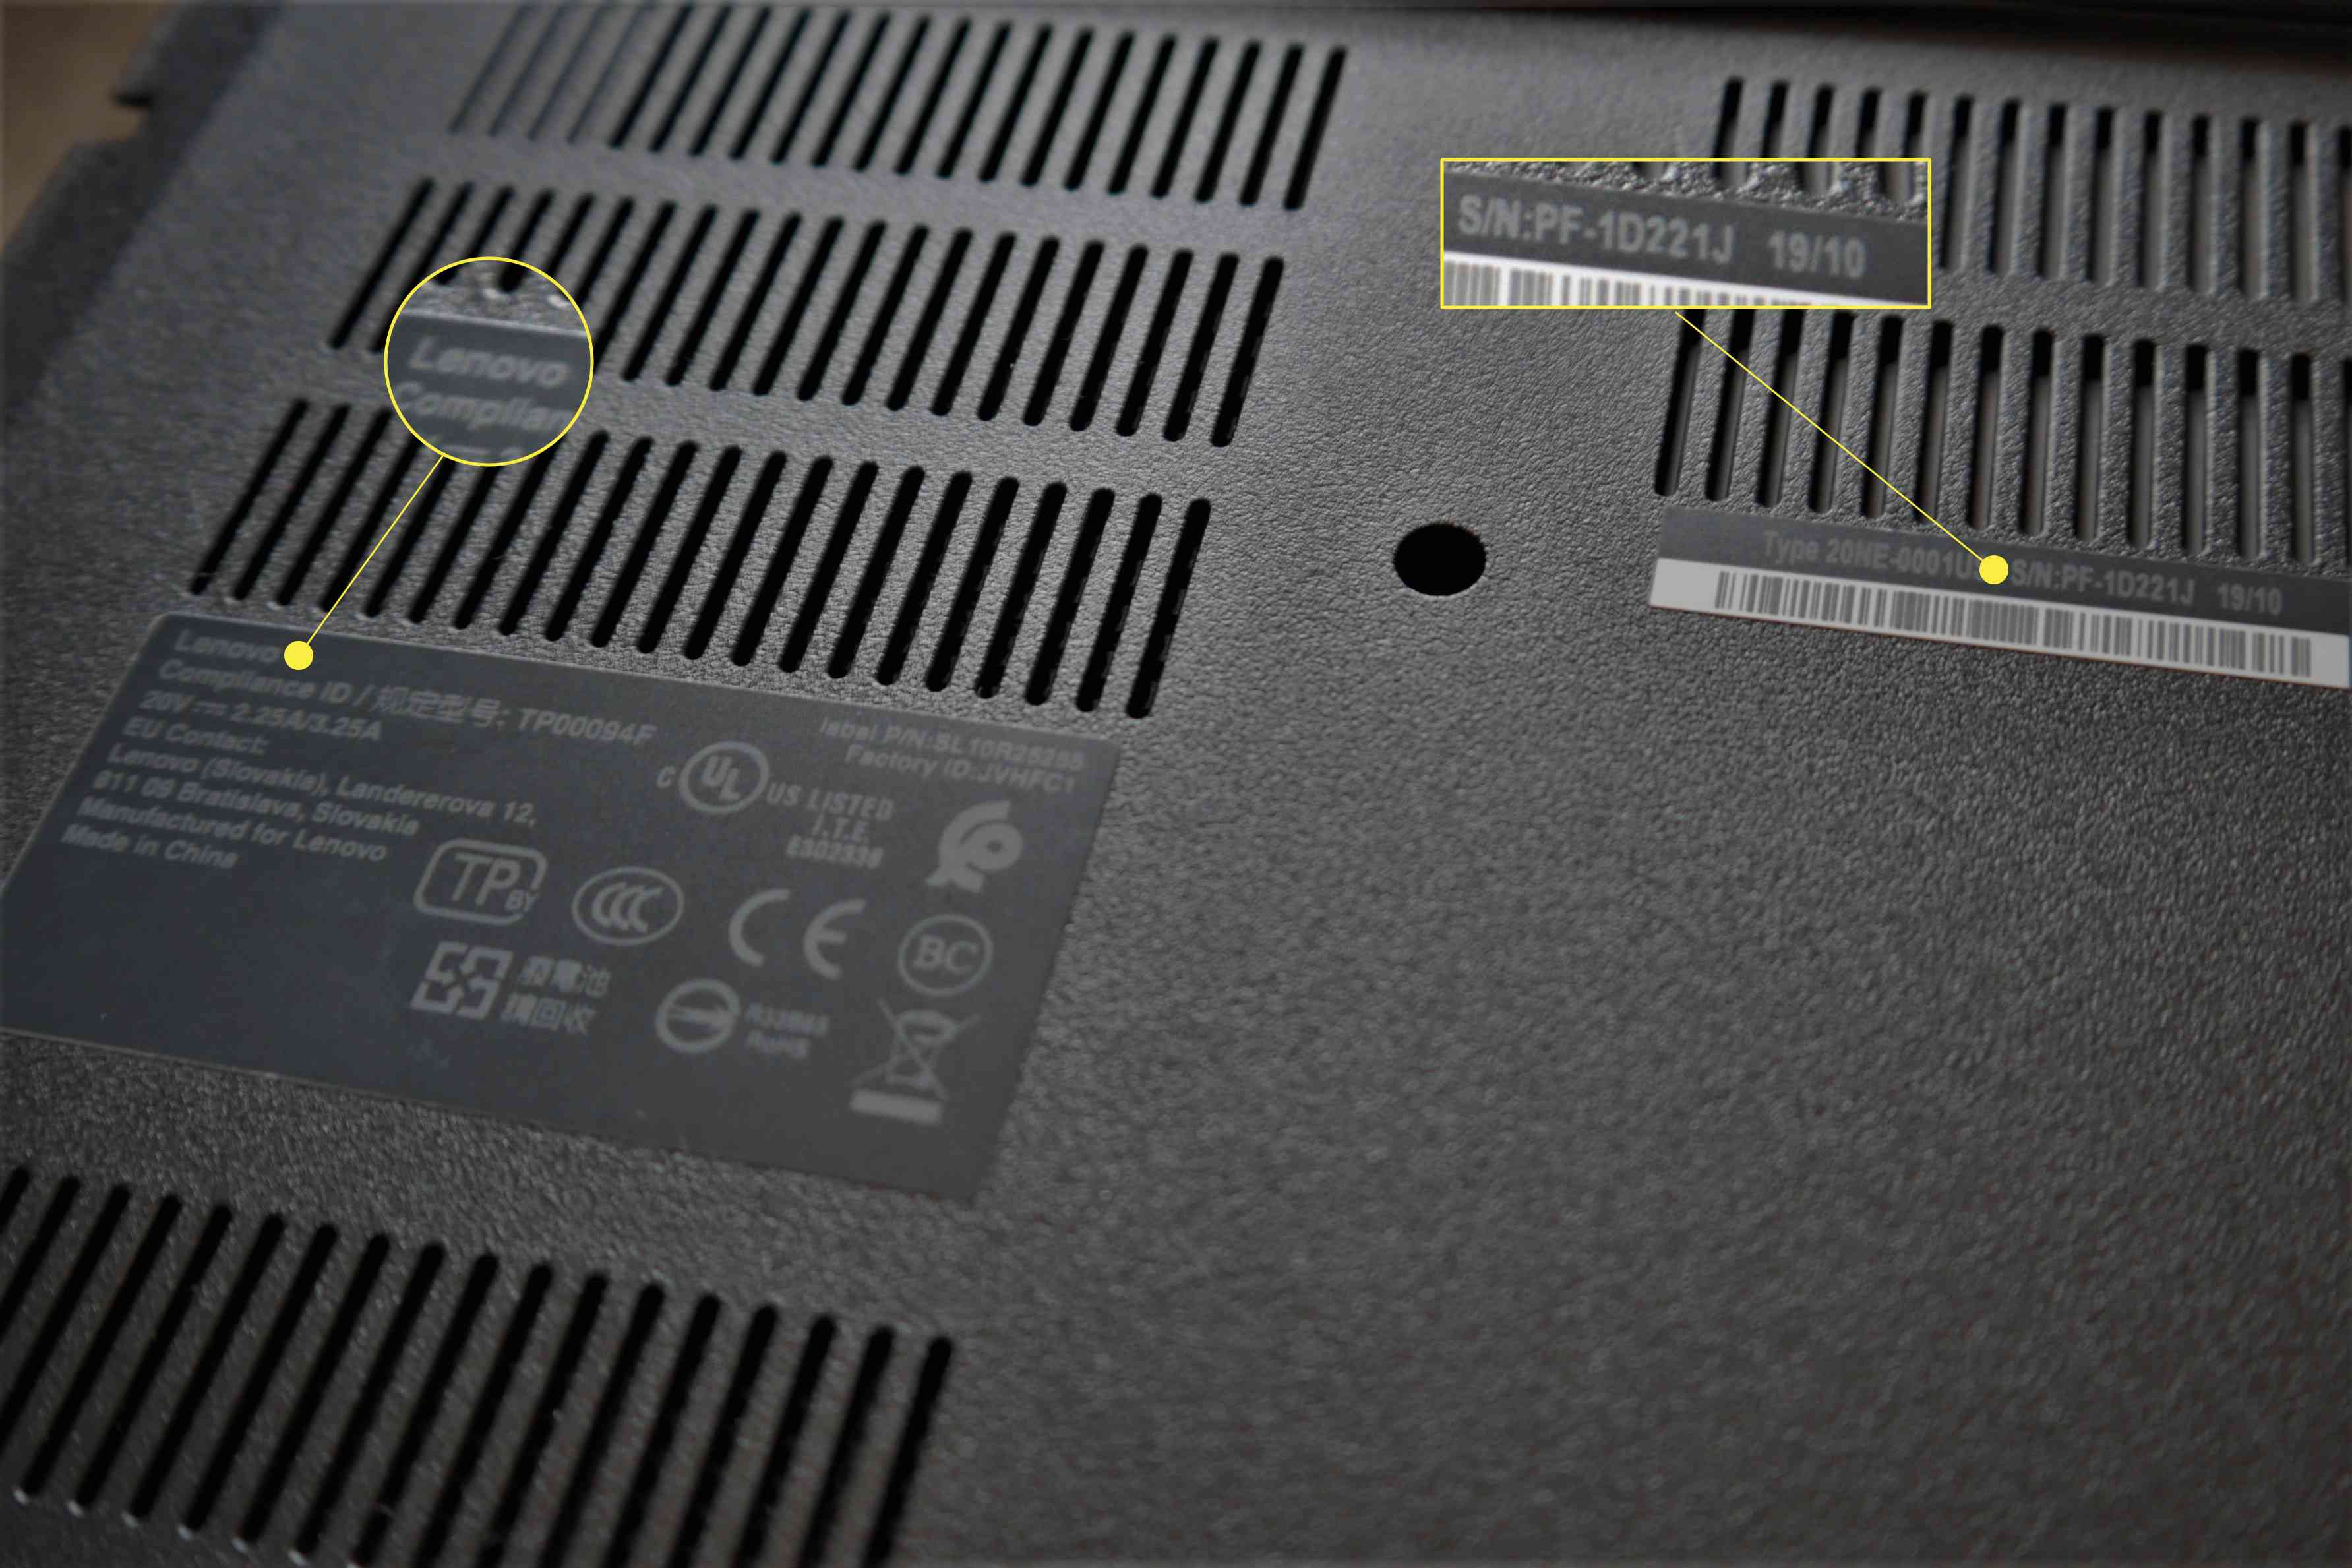 A photo of the bottom of a laptop with the serial number and manufacturer name highlighted.